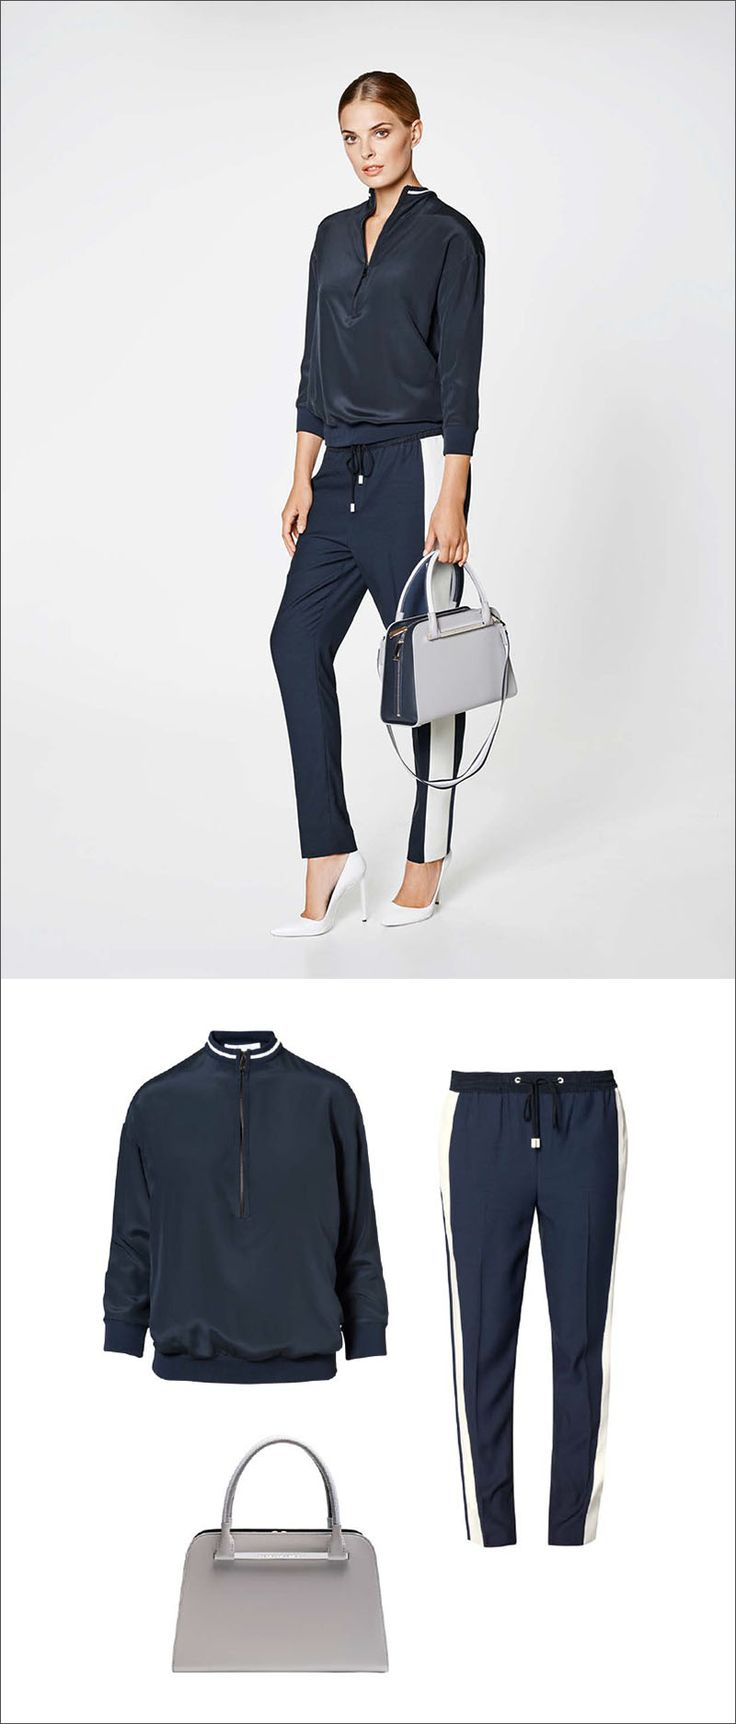 Women's Fashion Ideas - 12 Womens Outfits From Porsche Design's 2017 Spring/Summer Collection // This casual women's outfit features a navy blouse, a pair of navy and white pants, and a classic grey and navy purse.